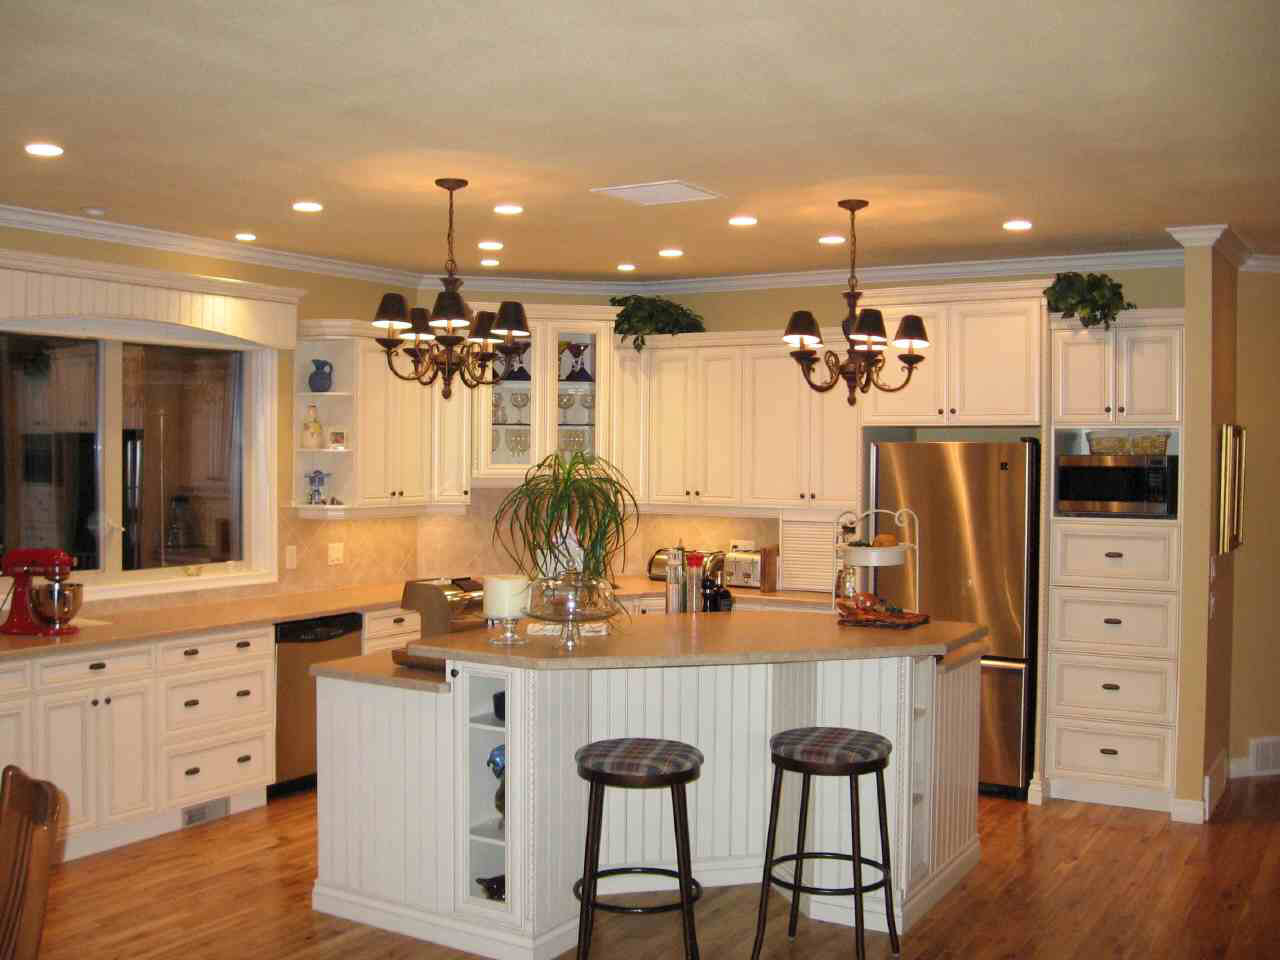 Small kitchen tables and chairs for small spaces photo - 2